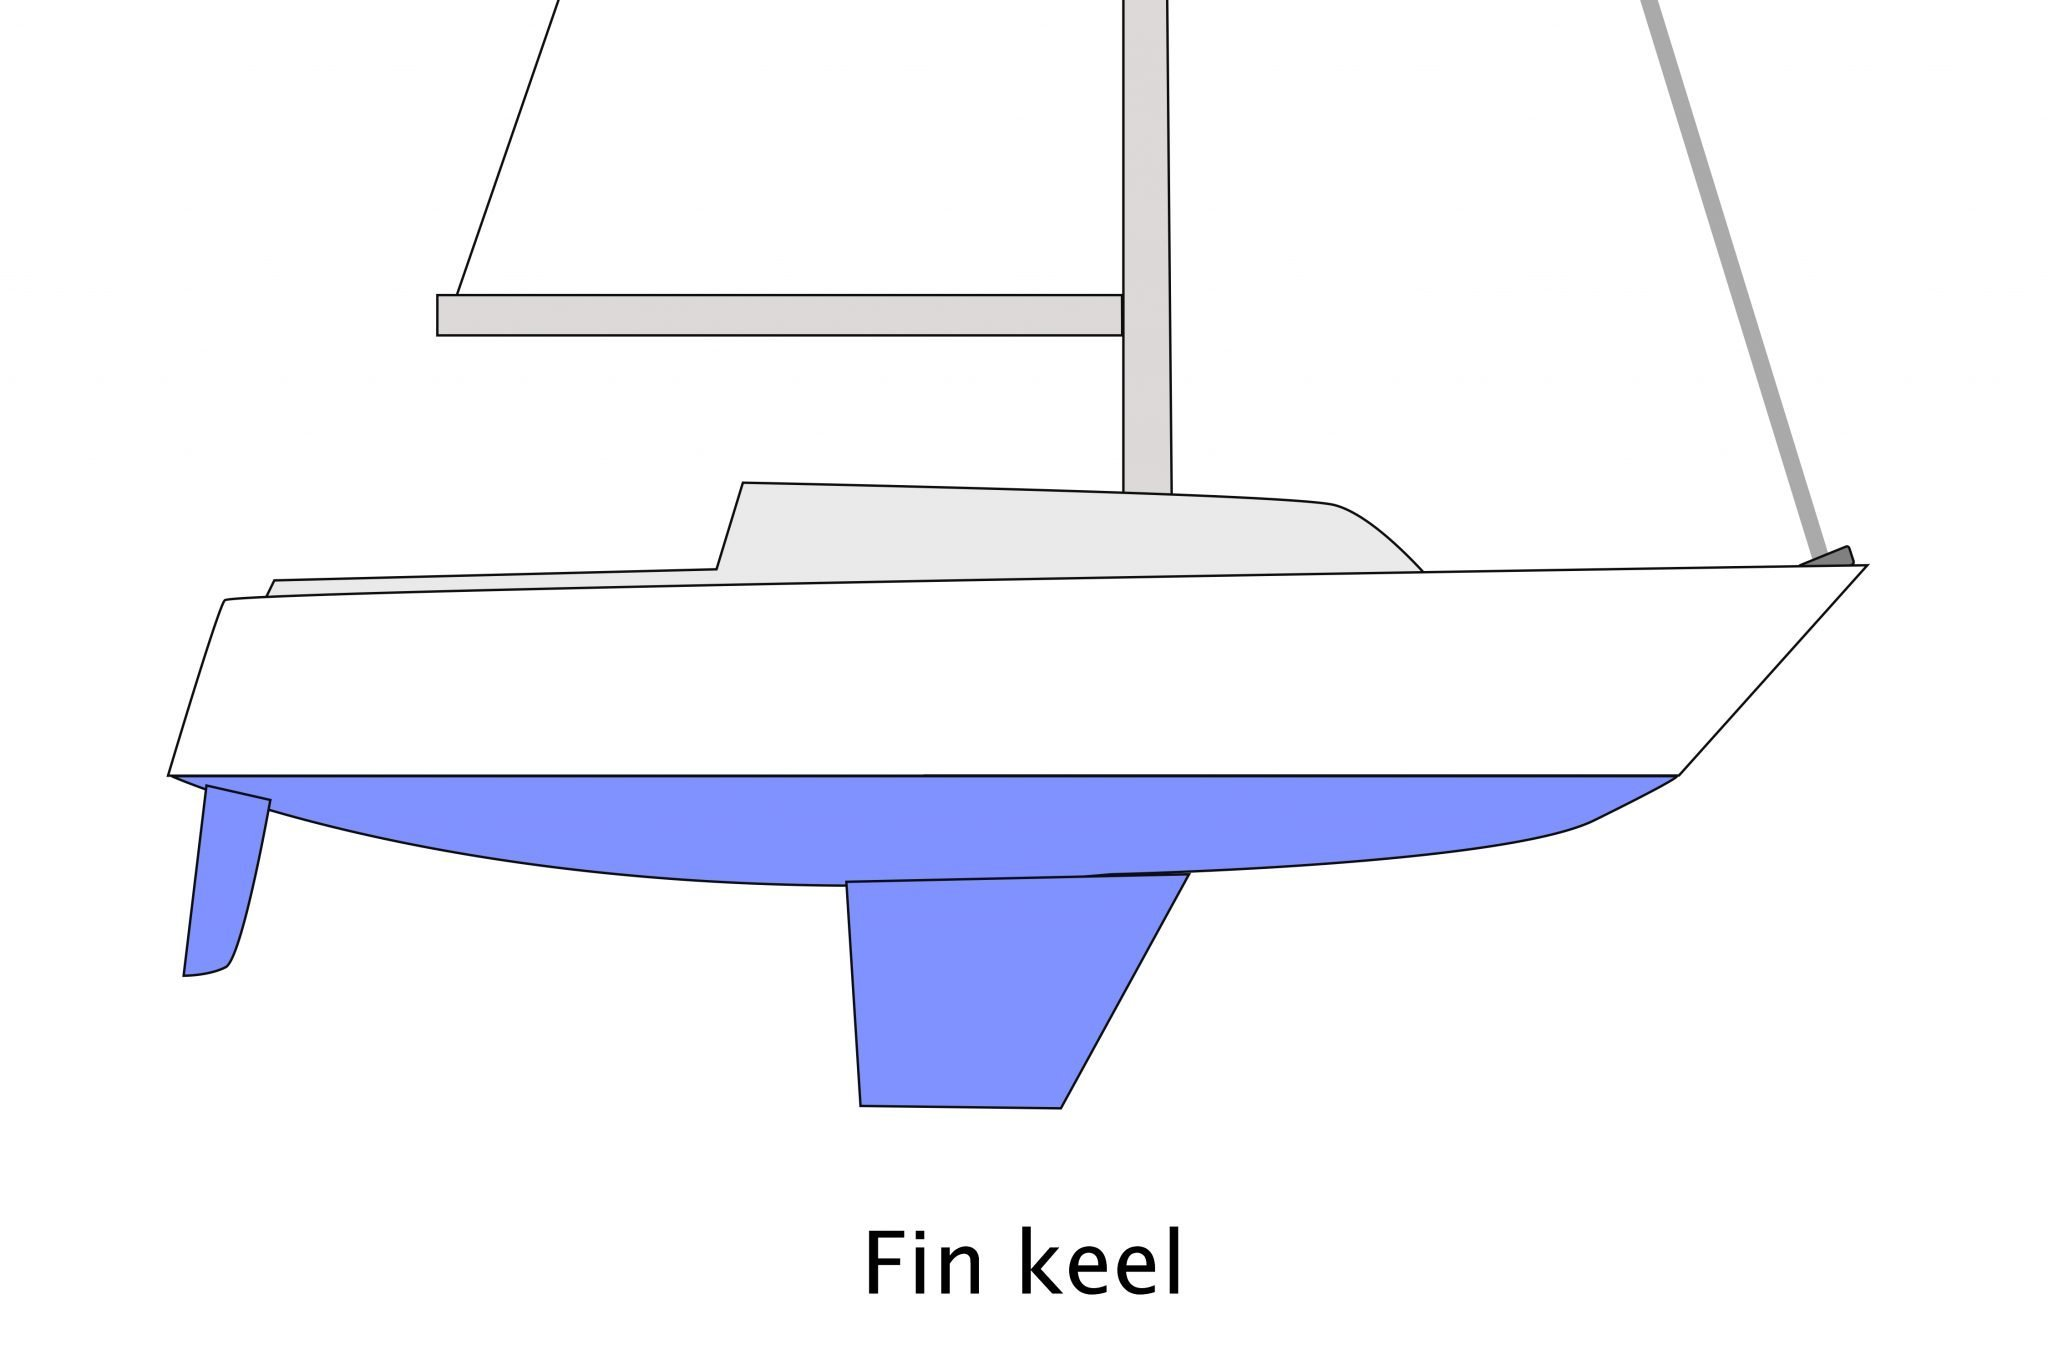 keel design options to consider when choosing a yacht boat images clip art free row boat clip art free